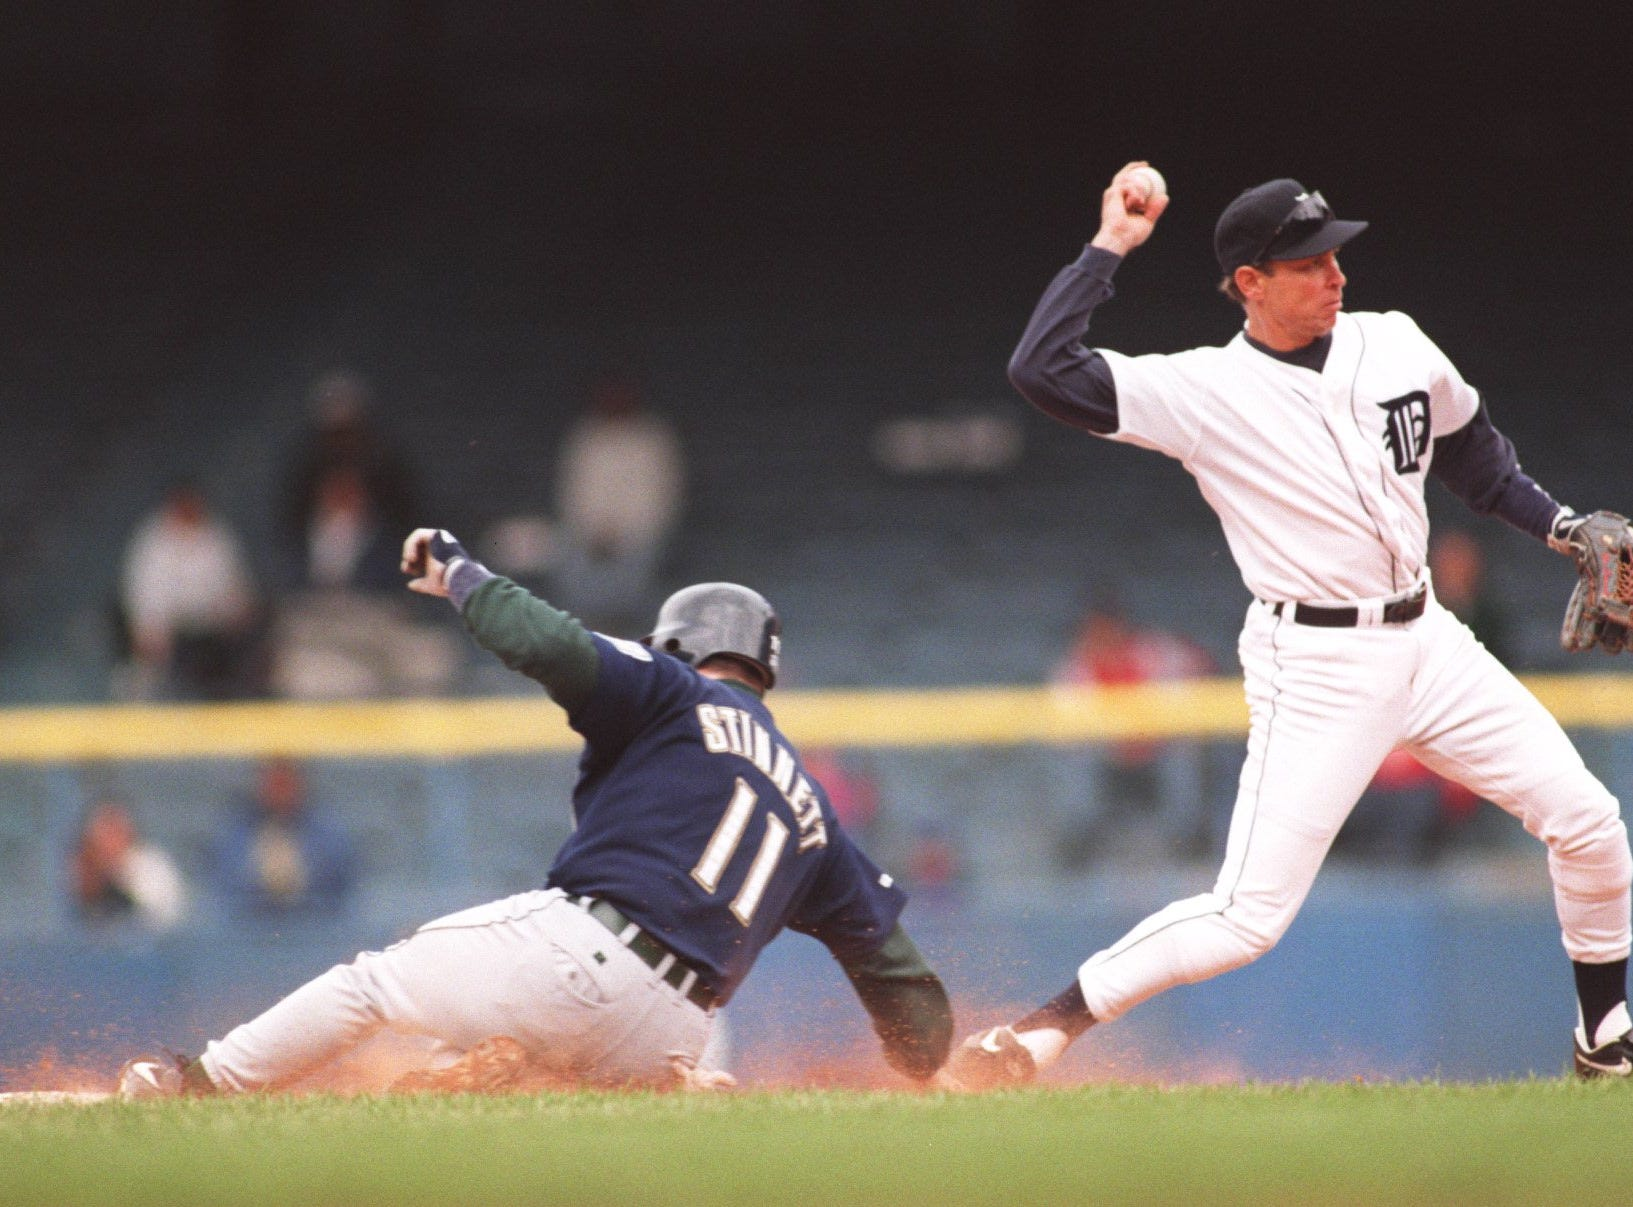 Trammell throws to first base as #11 Kelly Stinnett slides into second in 1996.